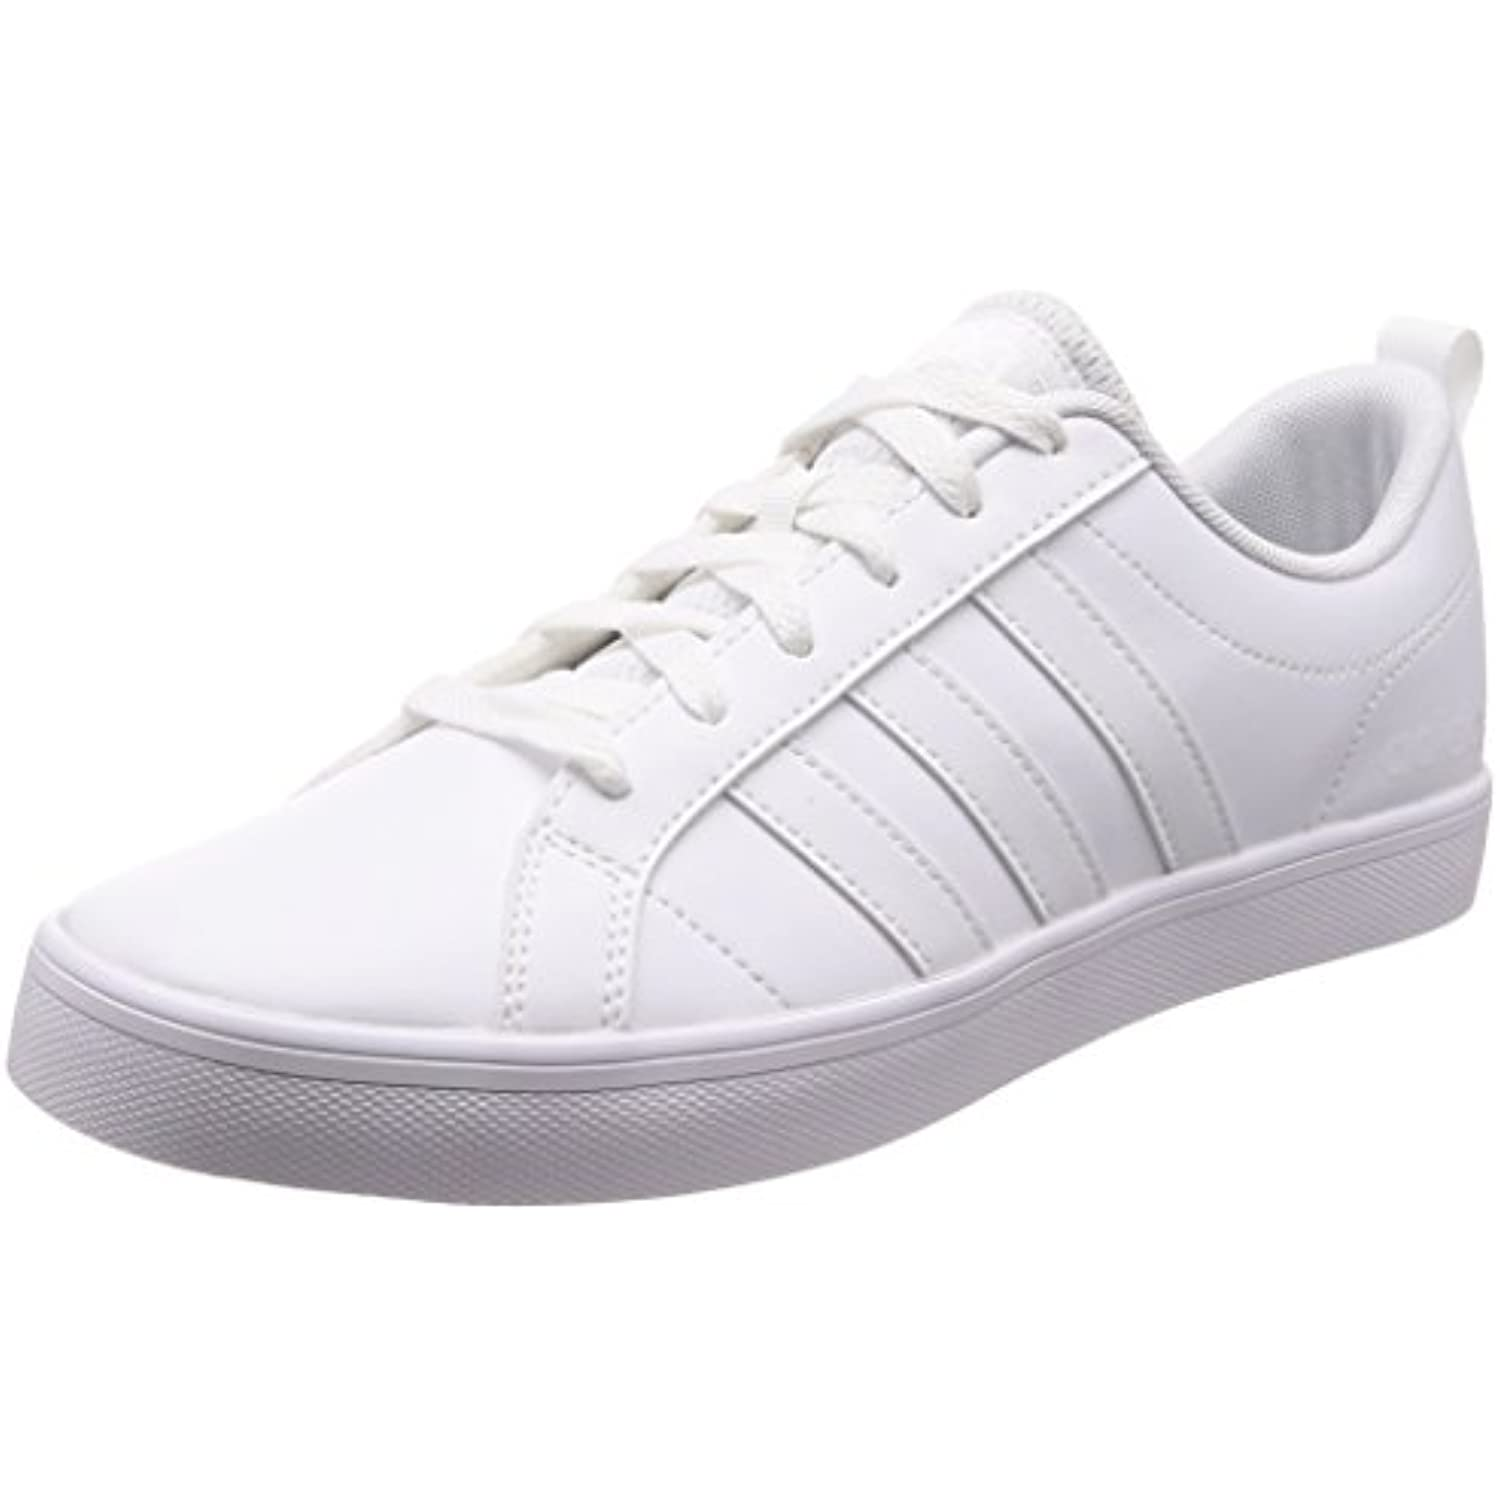 Adidas Vs Pace, Chaussures Fitness de Fitness Chaussures Homme - B07D9HN9N5 - 44ea2b